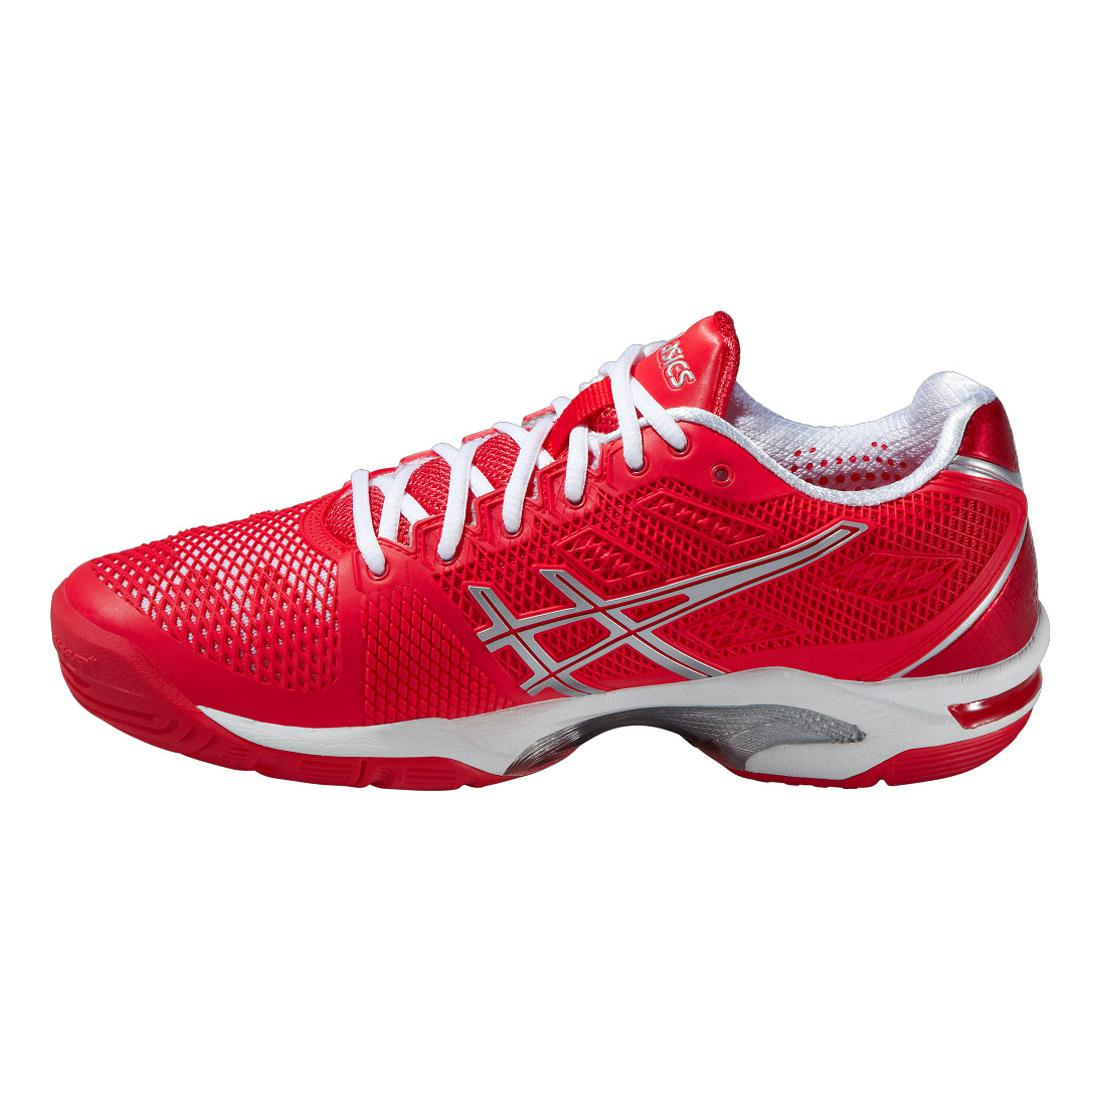 Asics Speed Tennis Shoes